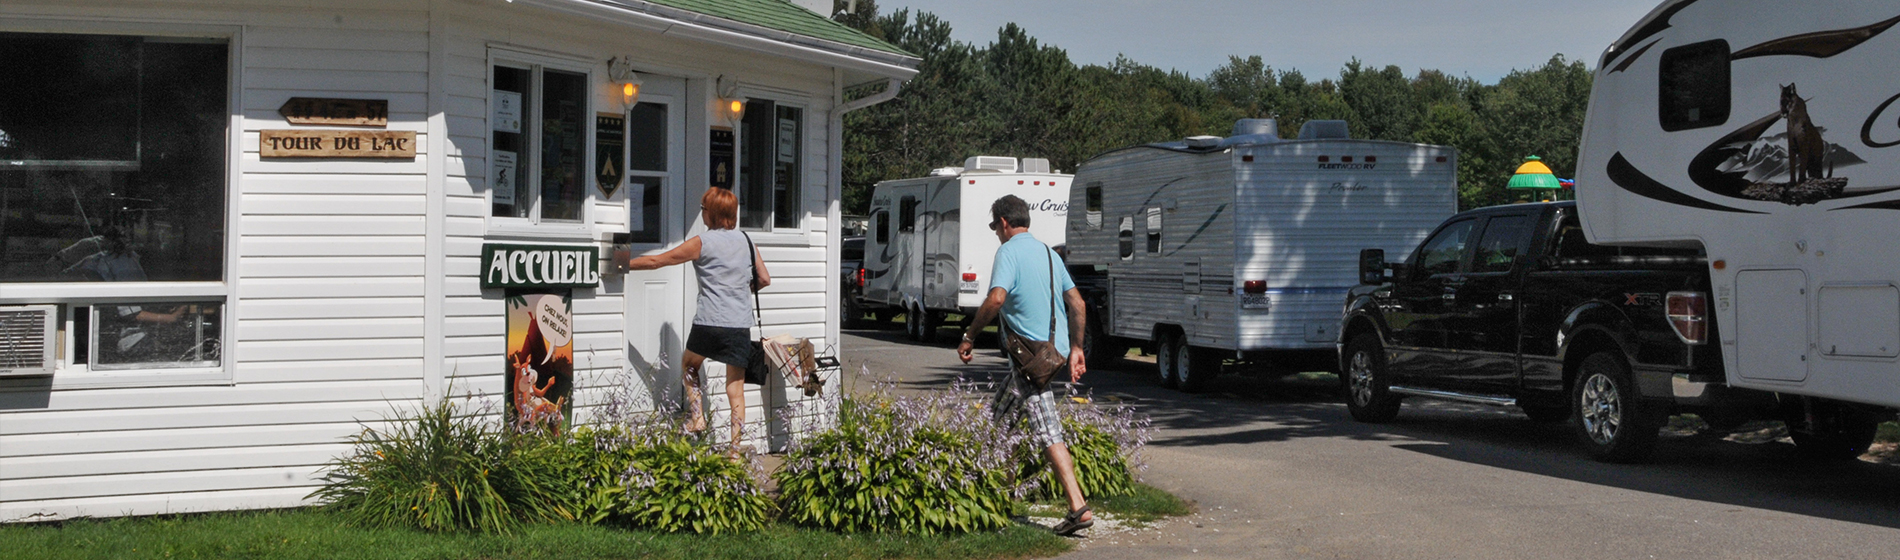 Contact the team at Camping Lac-Saint-Michel in Mauricie